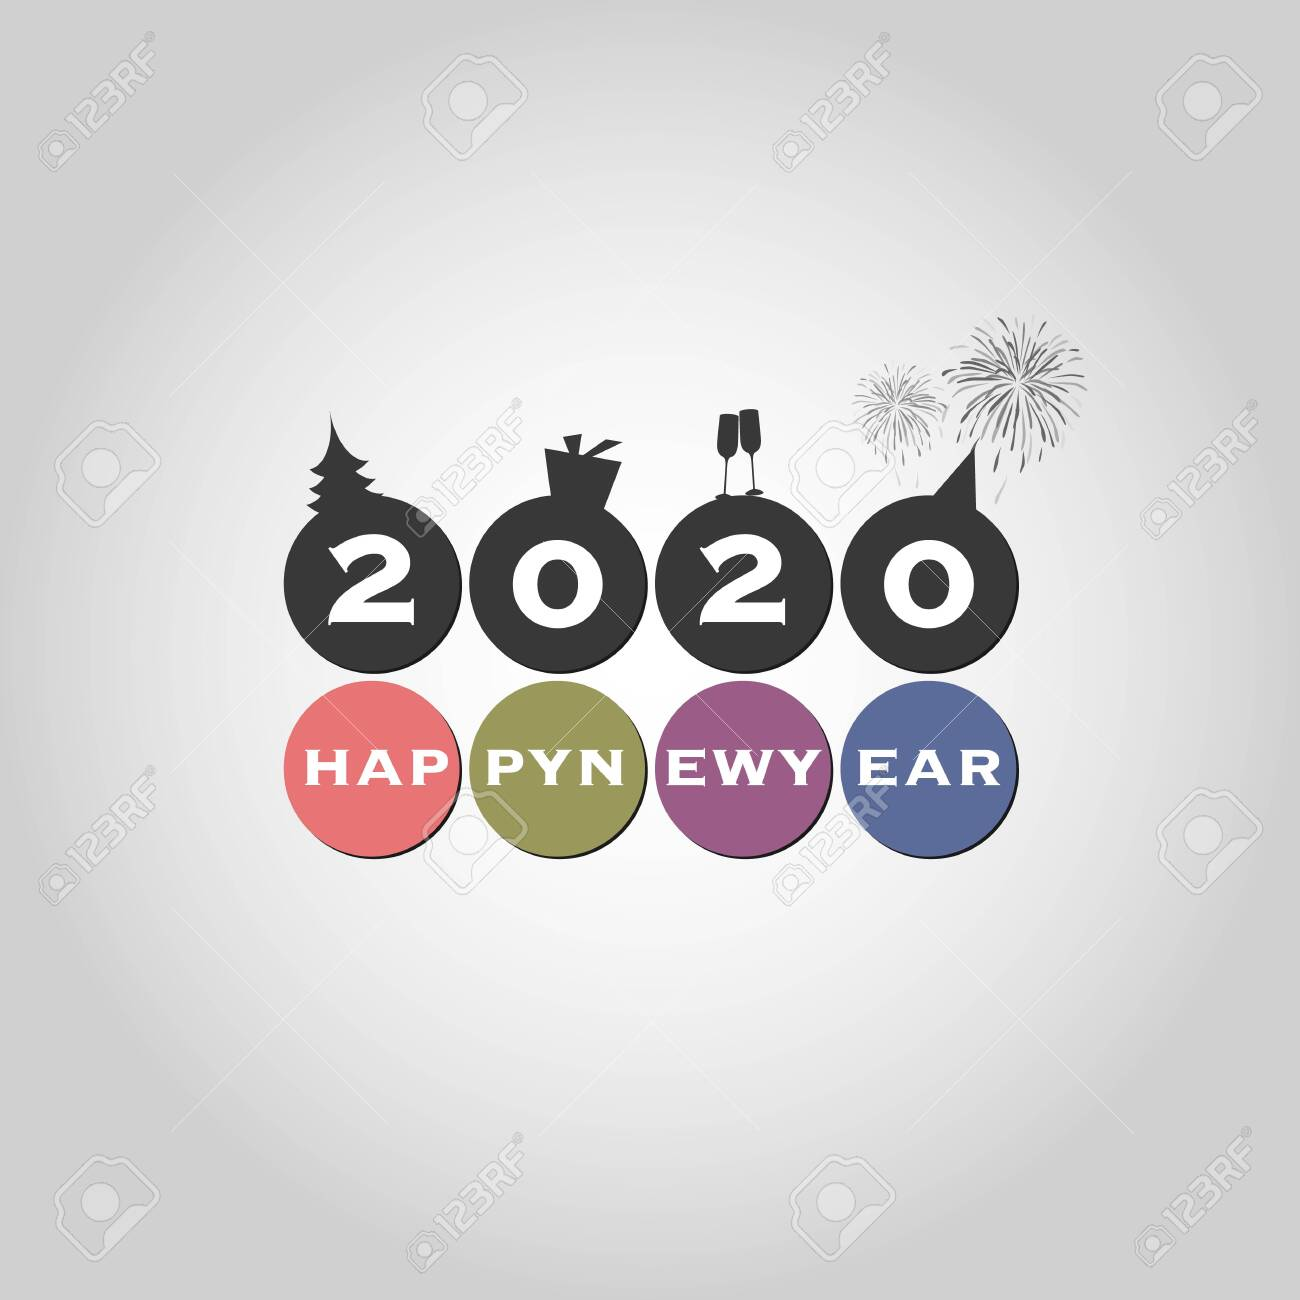 Best Wishes - Modern Simple Minimal Happy New Year Card or Cover Background Template - 2020 - 134876411